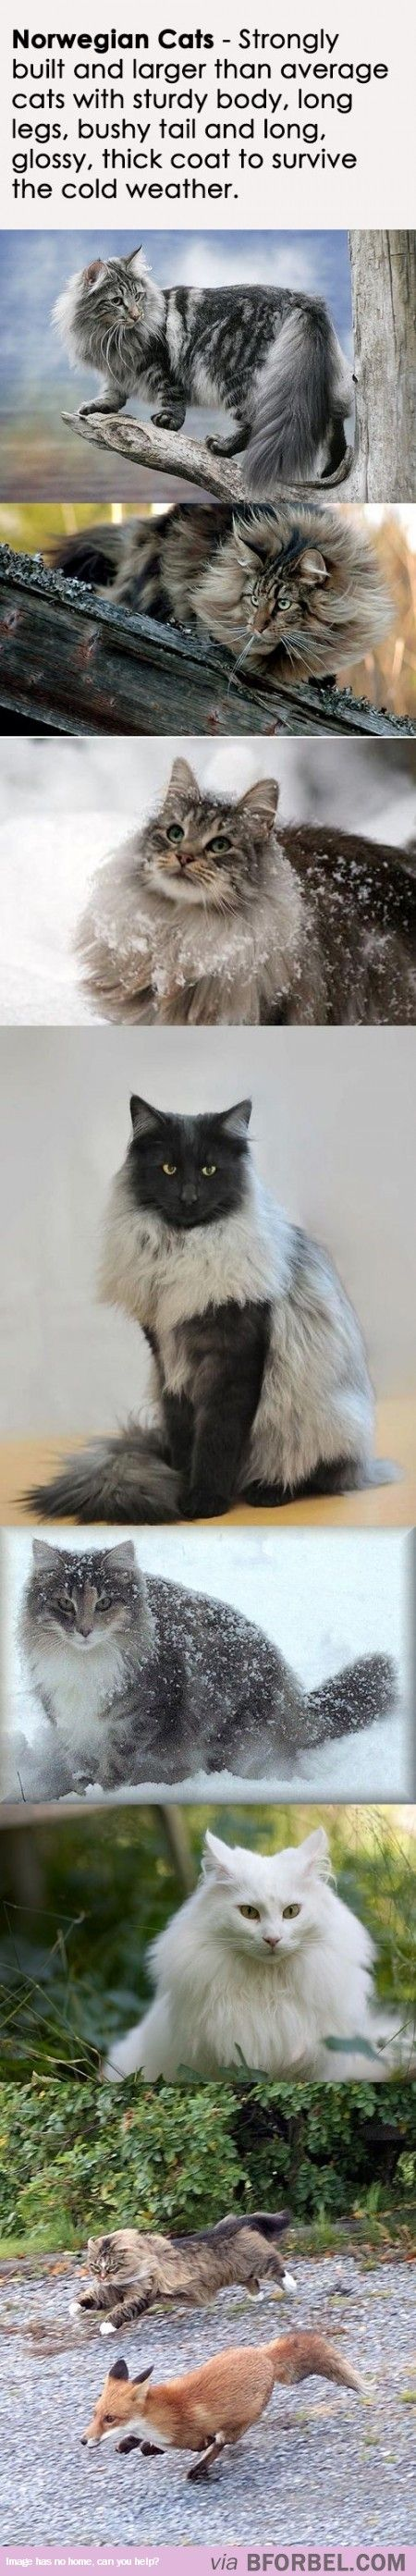 Norwegian Cats Designed To Survive In Harsh Conditions�